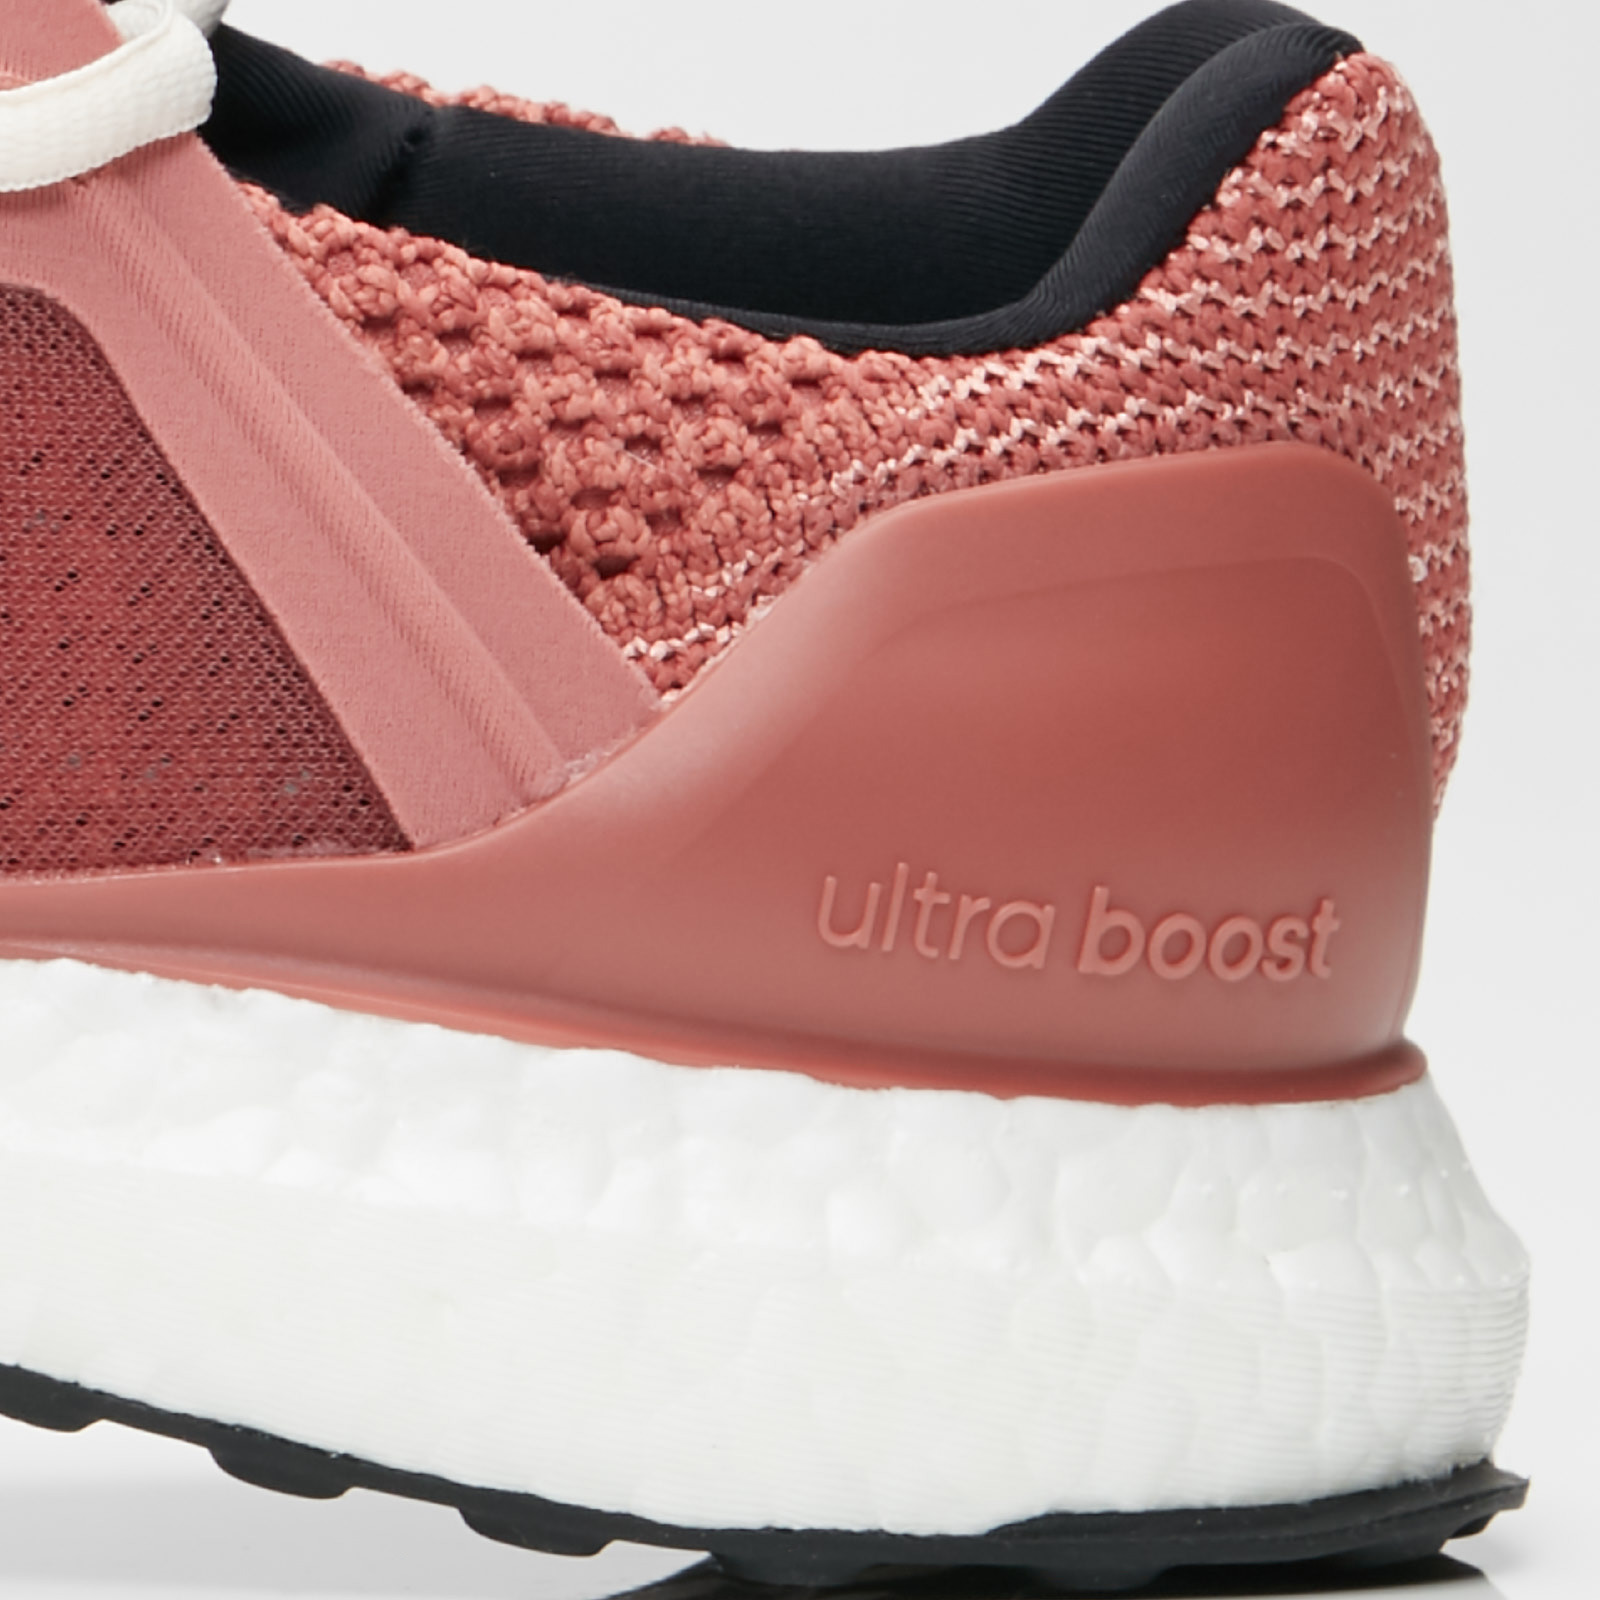 online retailer 09788 65635 ... adidas by Stella McCartney UltraBOOST